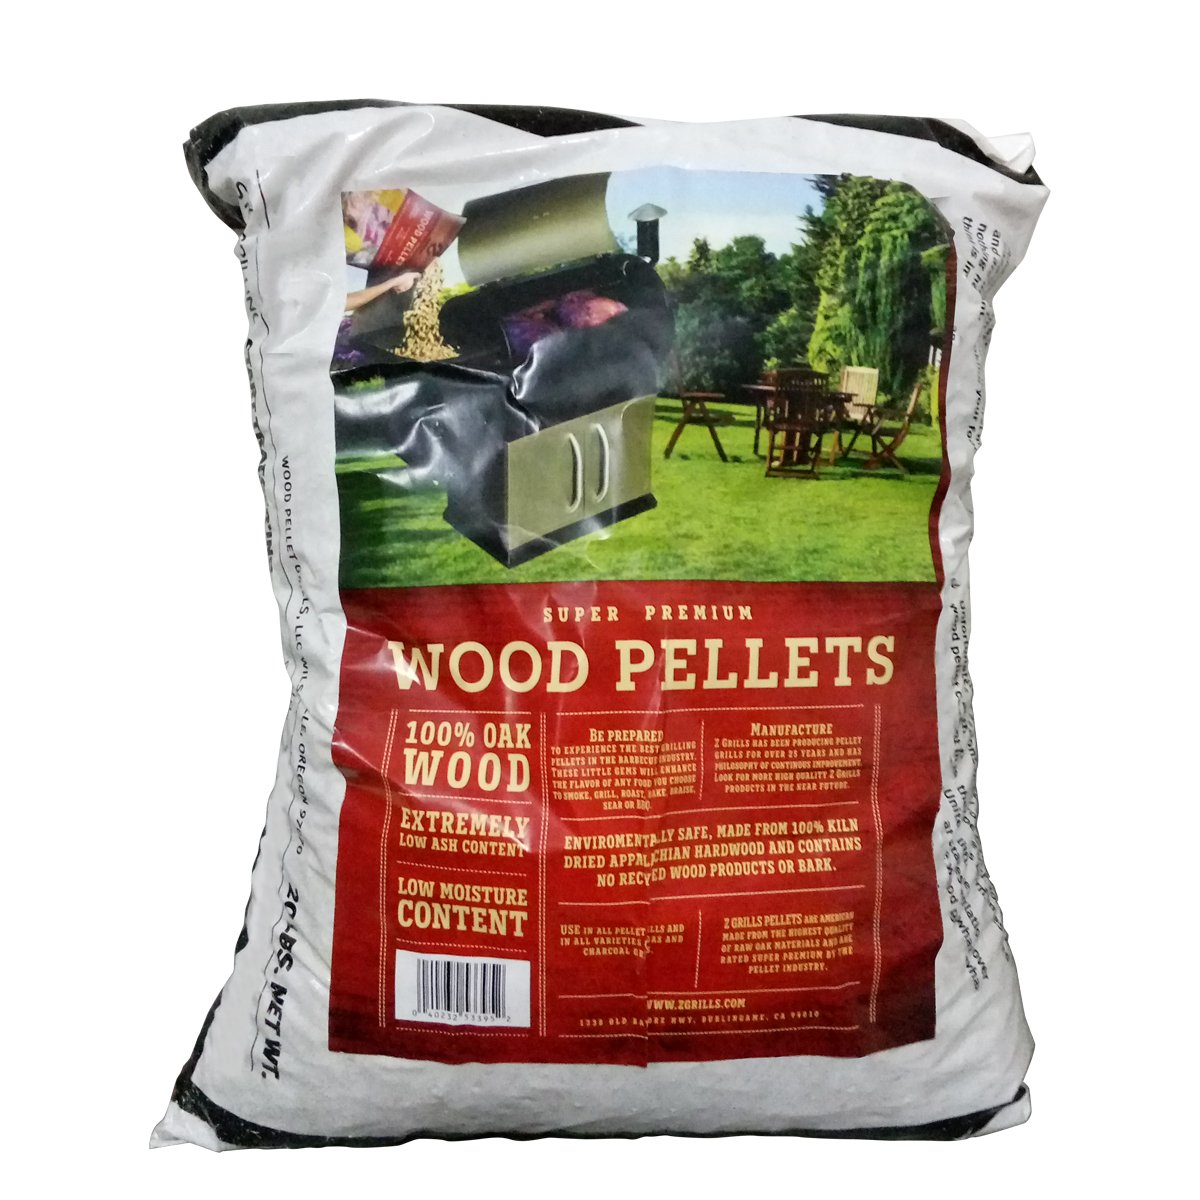 Z GRILLS Premium BBQ Wood Pellets for Grilling Smoking Cooking Oak Hardwood Pellets,20LB Per Bag Made in USA(1) by Z GRILLS